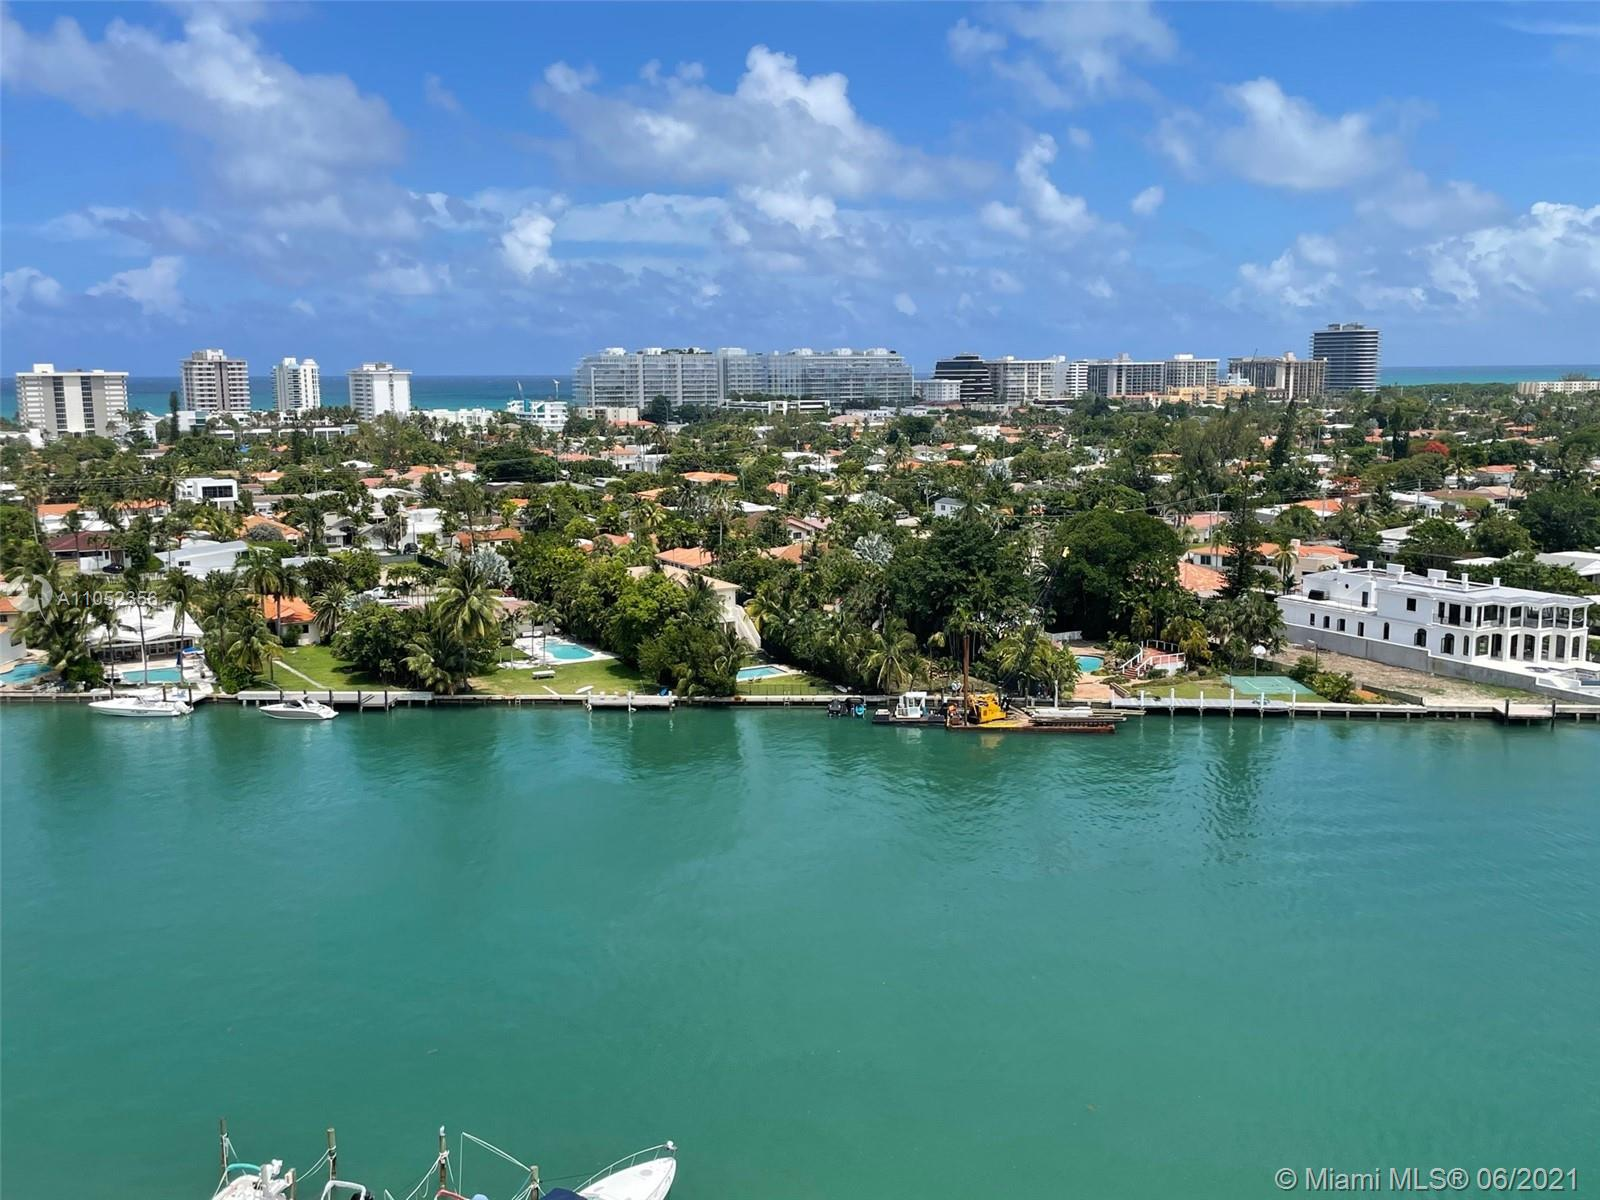 Located on the tip of Bay Harbor Islands, the Blair House is an iconic mid-century modern building with stunning views of Indian Creek, Downtown Miami, and the open/tranquil waters of Biscayne Bay. This Penthouse unit has one bedroom, one and a half baths (could be converted into a two bedroom), tile floors, foyer entry, one storage unit, and 1 deeded parking space. INCREDIBLE VIEWS from the eleventh floor, impact windows, automated blinds, newer a/c. Beautiful and sprawling pool area, gym, and totally remodeled common areas. A short walk to local restaurants, dog park, Bal Harbour Shops, and the beaches. A-rated school district and and an amazing lifestyle to call your own.